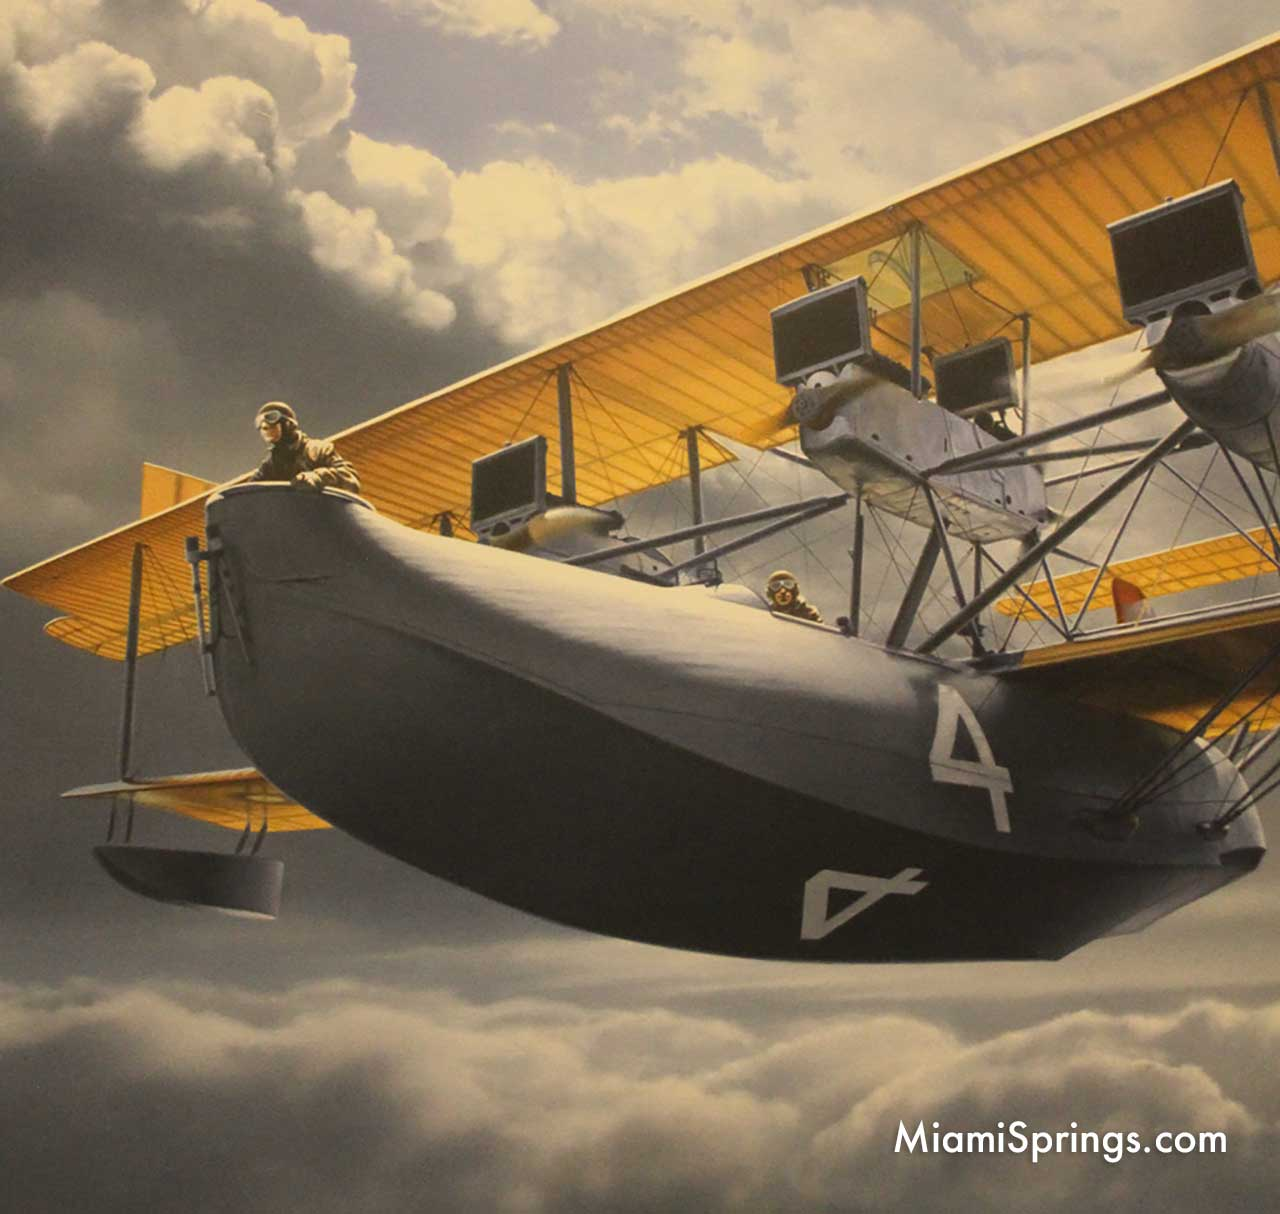 Photo of a painting at the Smithsonian Air and Space Museum of the Curtiss NC-4 Crossing